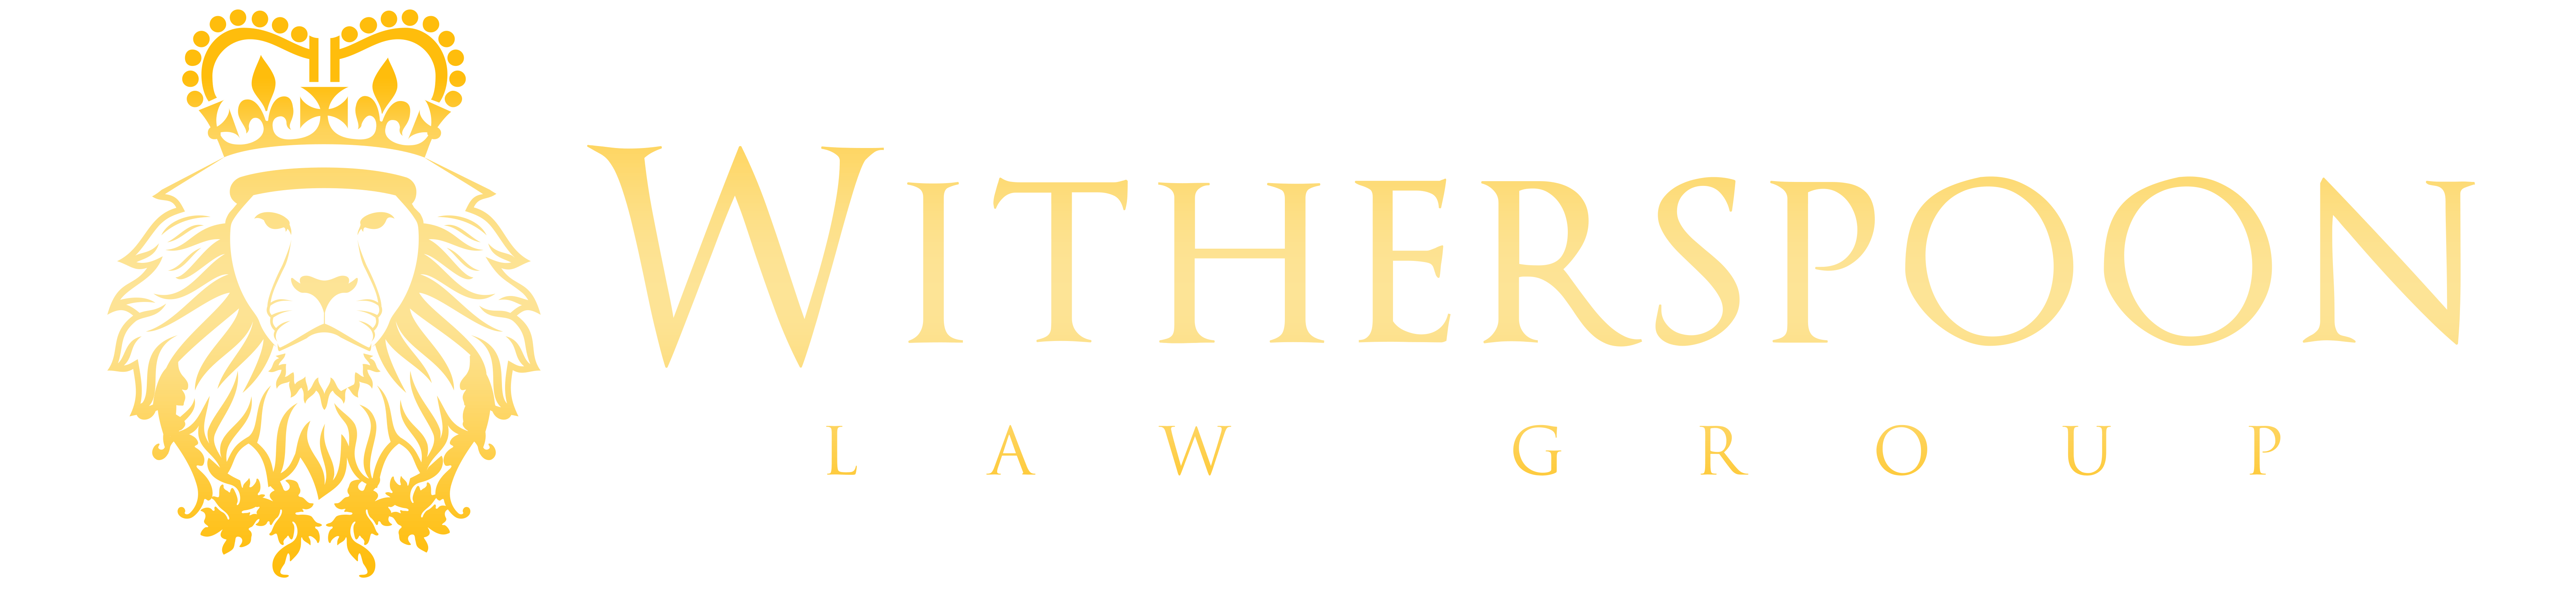 THE WITHERSPOON LAW GROUP | #1 TRUSTED ATTORNEYS • NATIONAL LEGAL PRACTICE